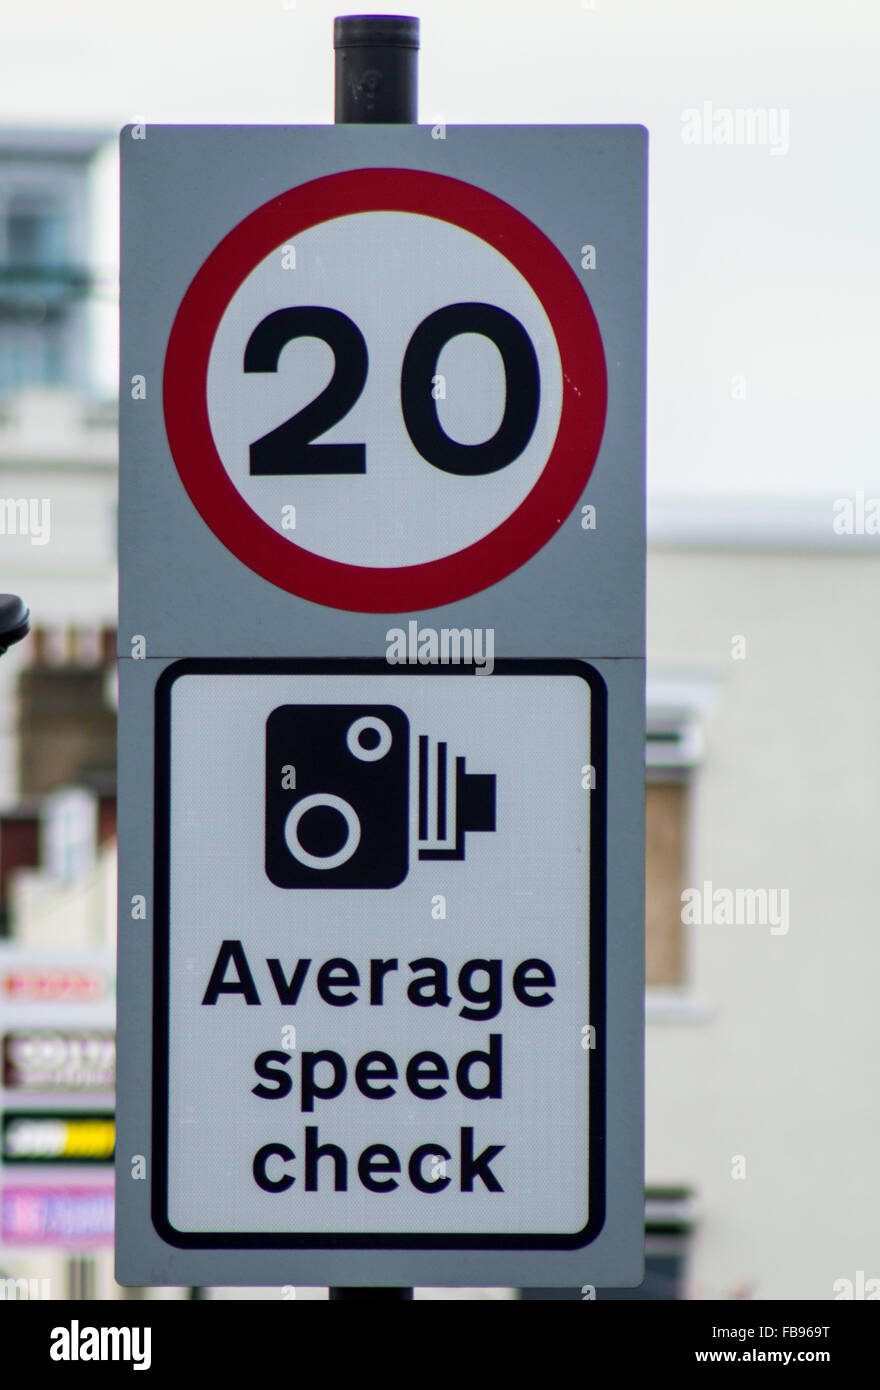 20mph Average Speed Check sign - Stock Image